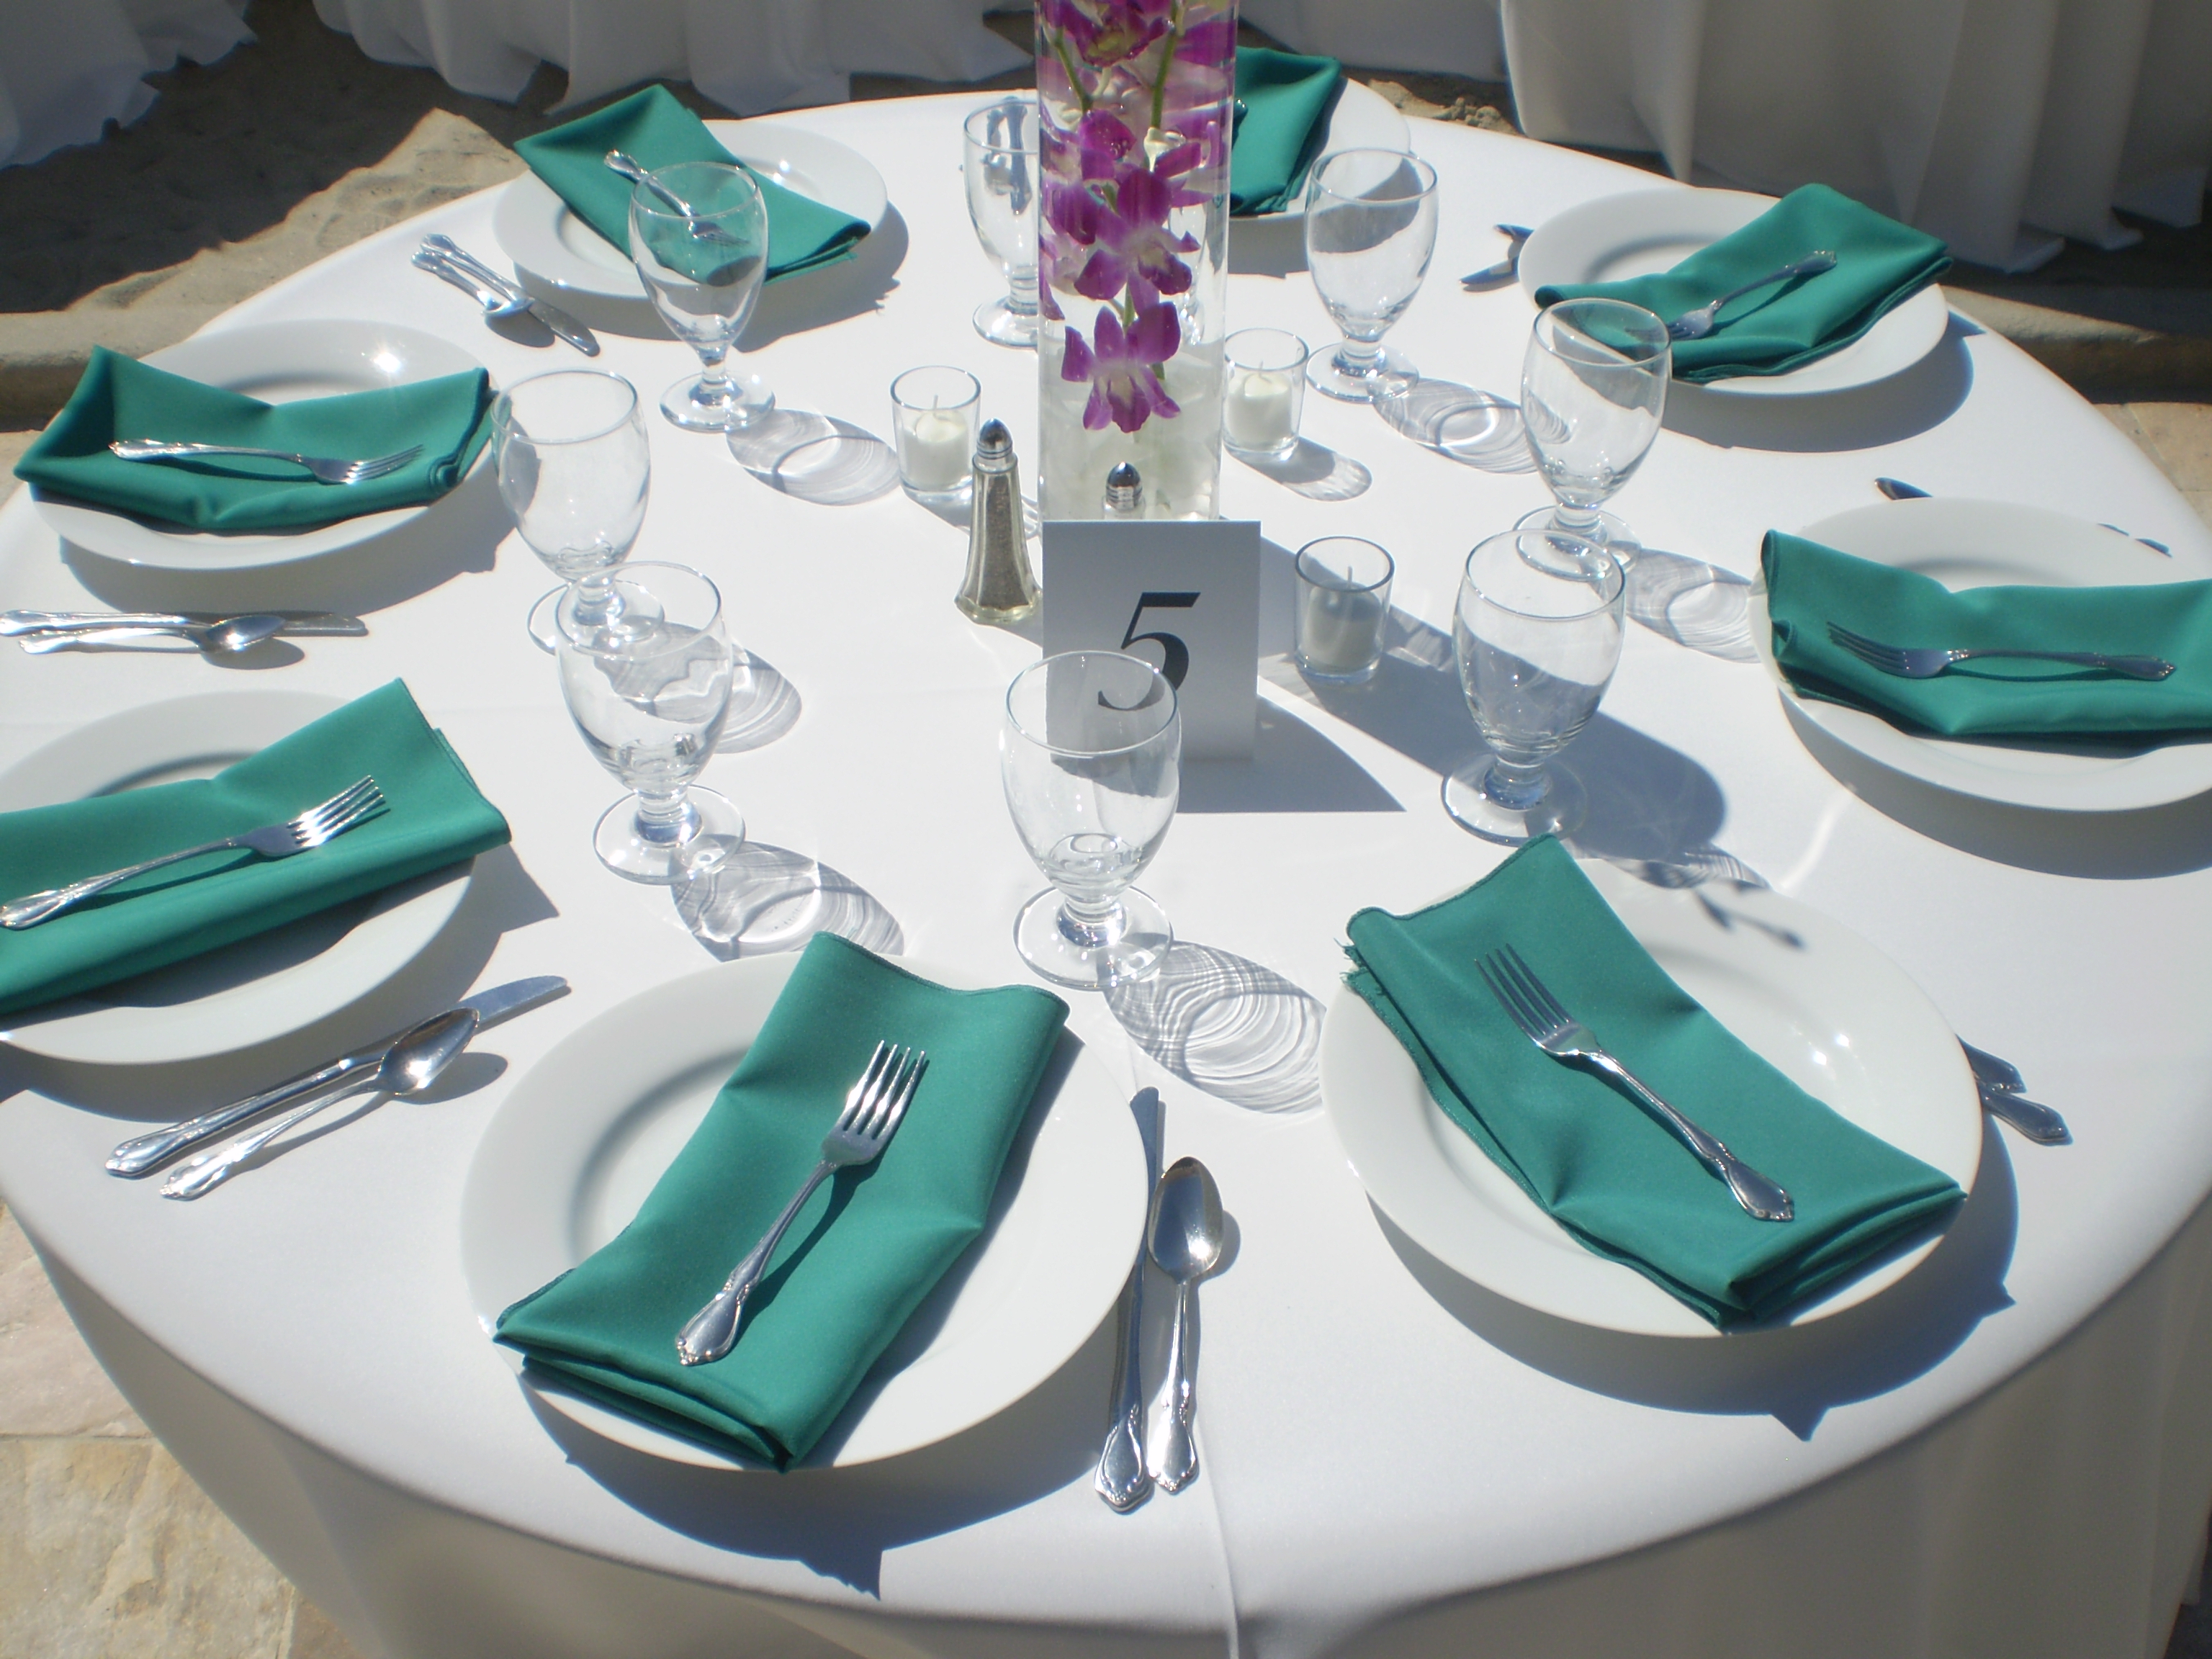 Blog - San Diego Wedding Catering, Corporate and Event Catering